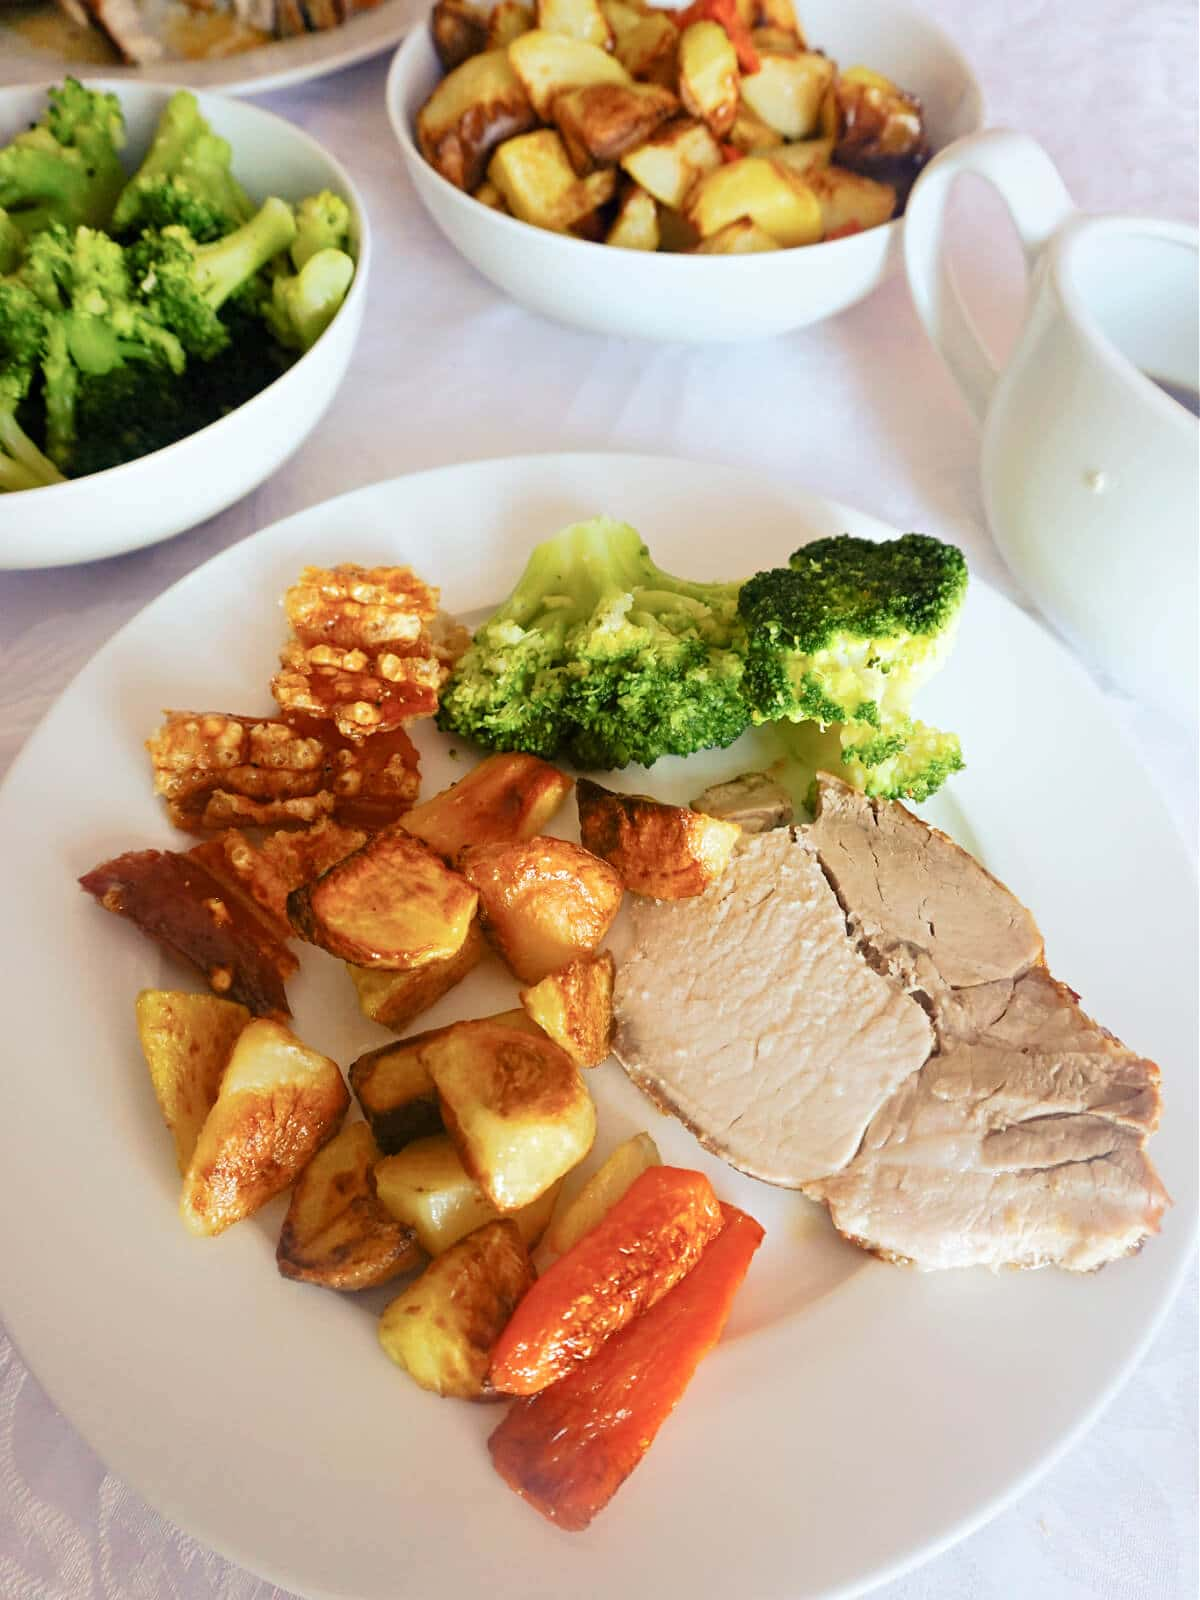 A white plate with a slice of roast pork, roasted vegetables and broccoli